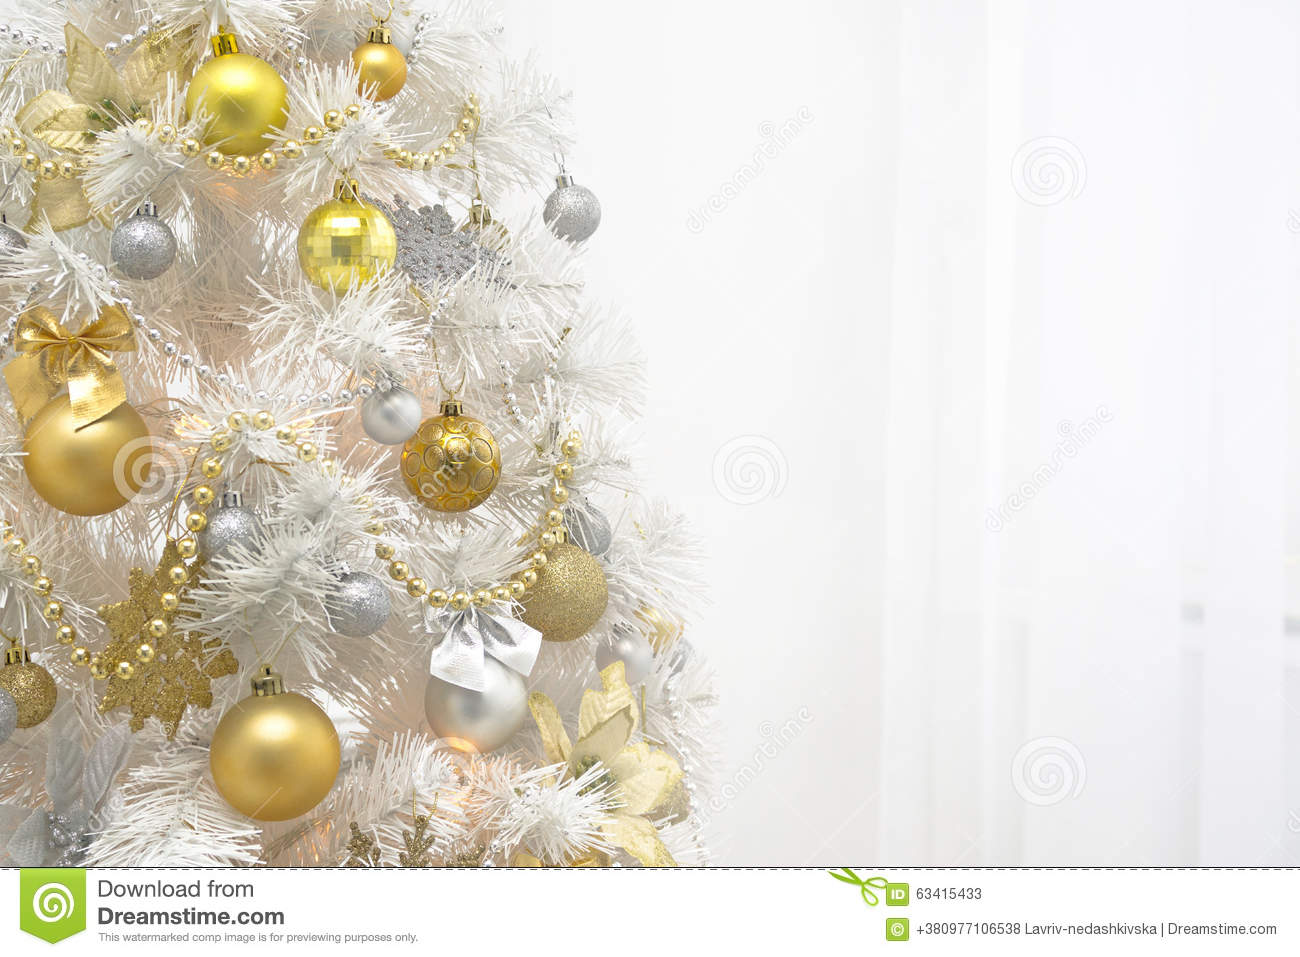 download white christmas tree with gold decoration on white background stock image image of golden - White Christmas Tree With Gold Decorations